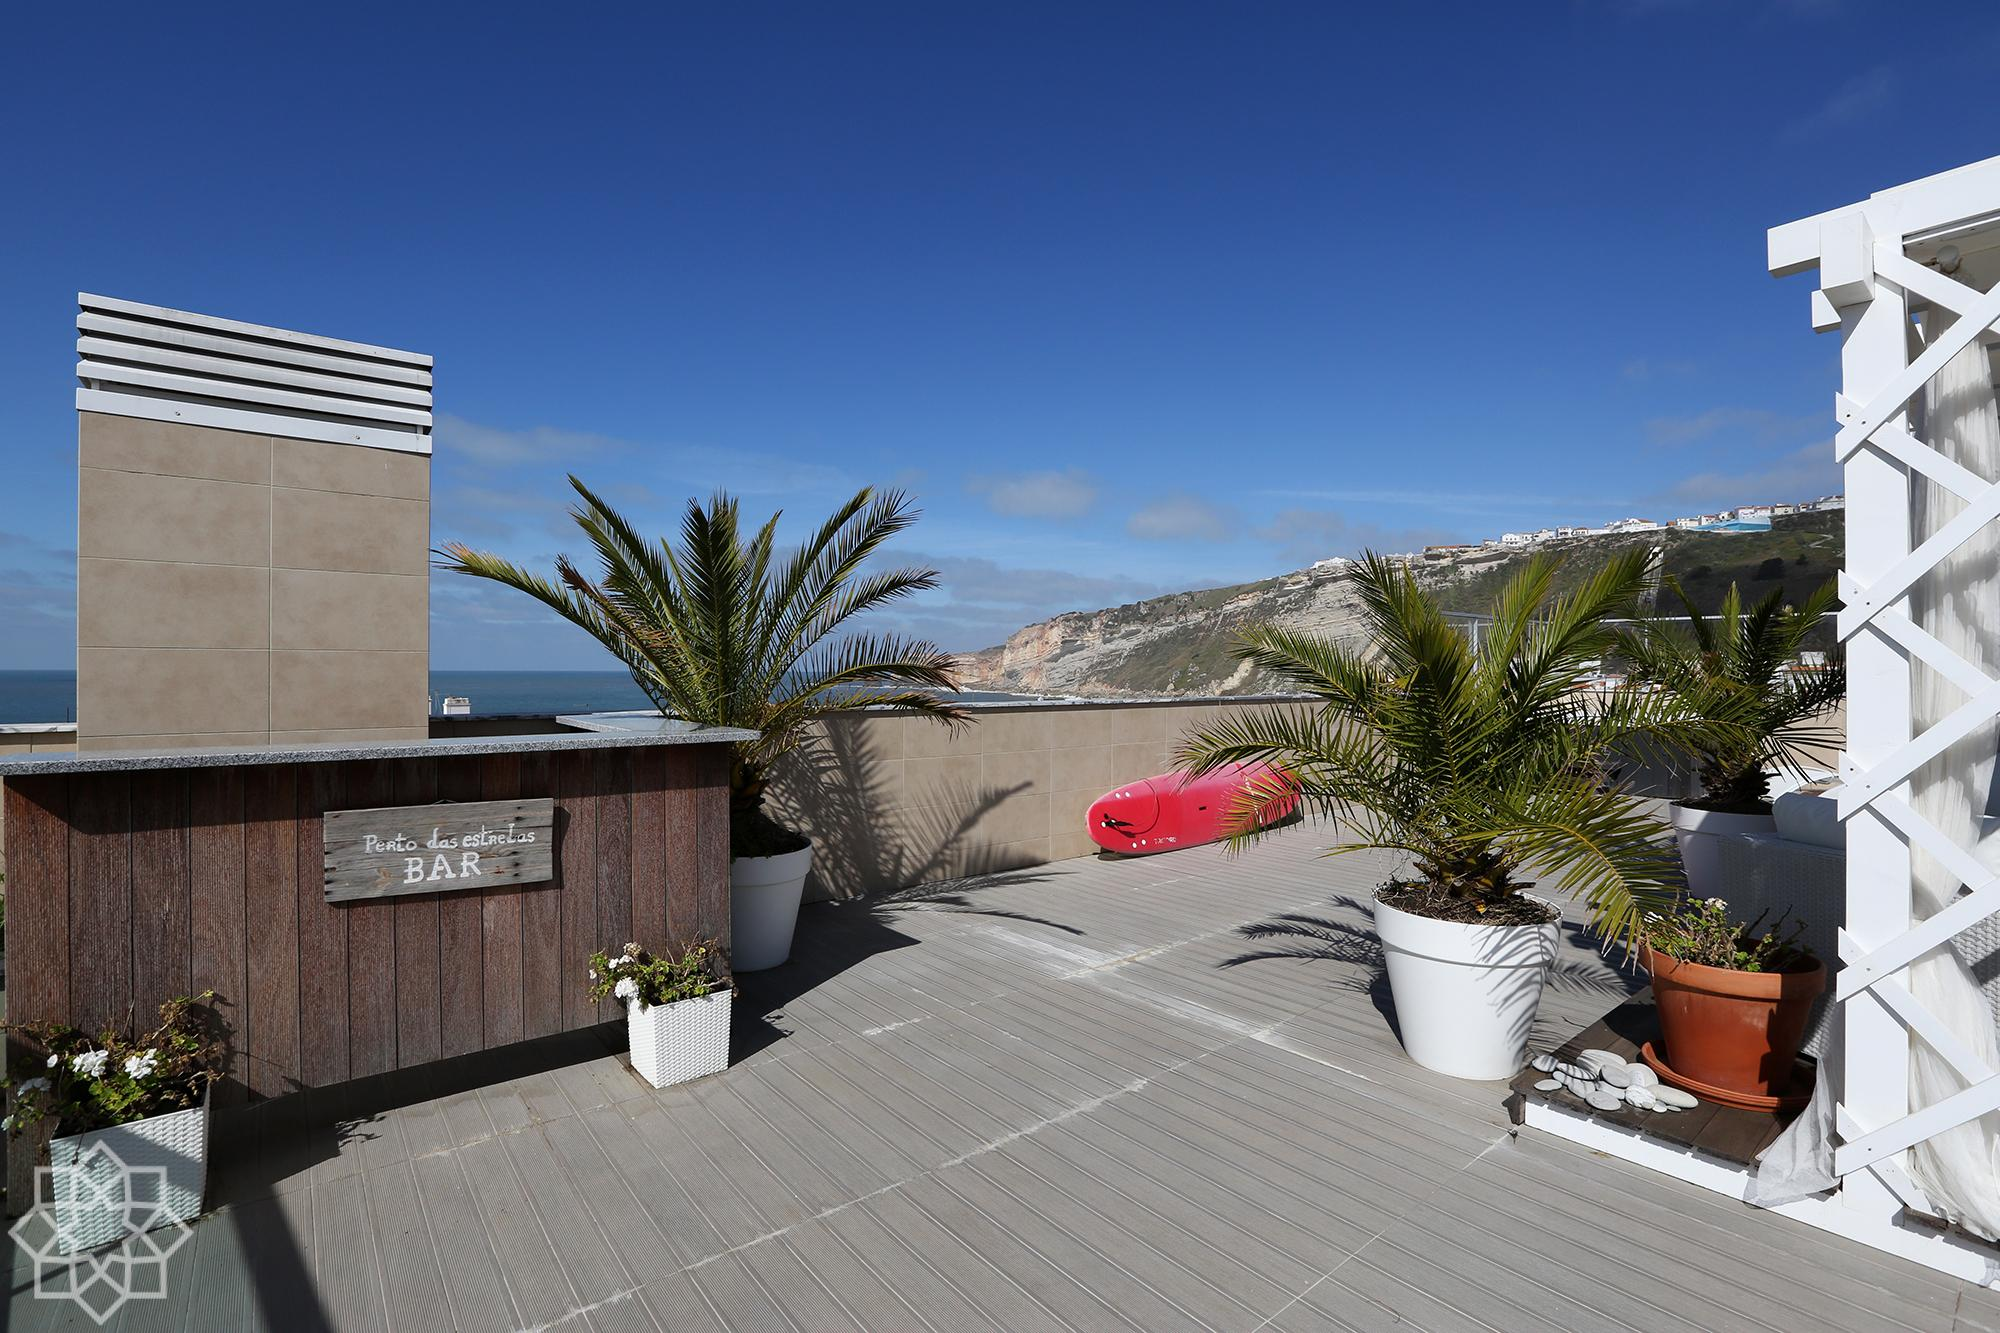 2 bedroom Penthouse with sea view in Nazaré